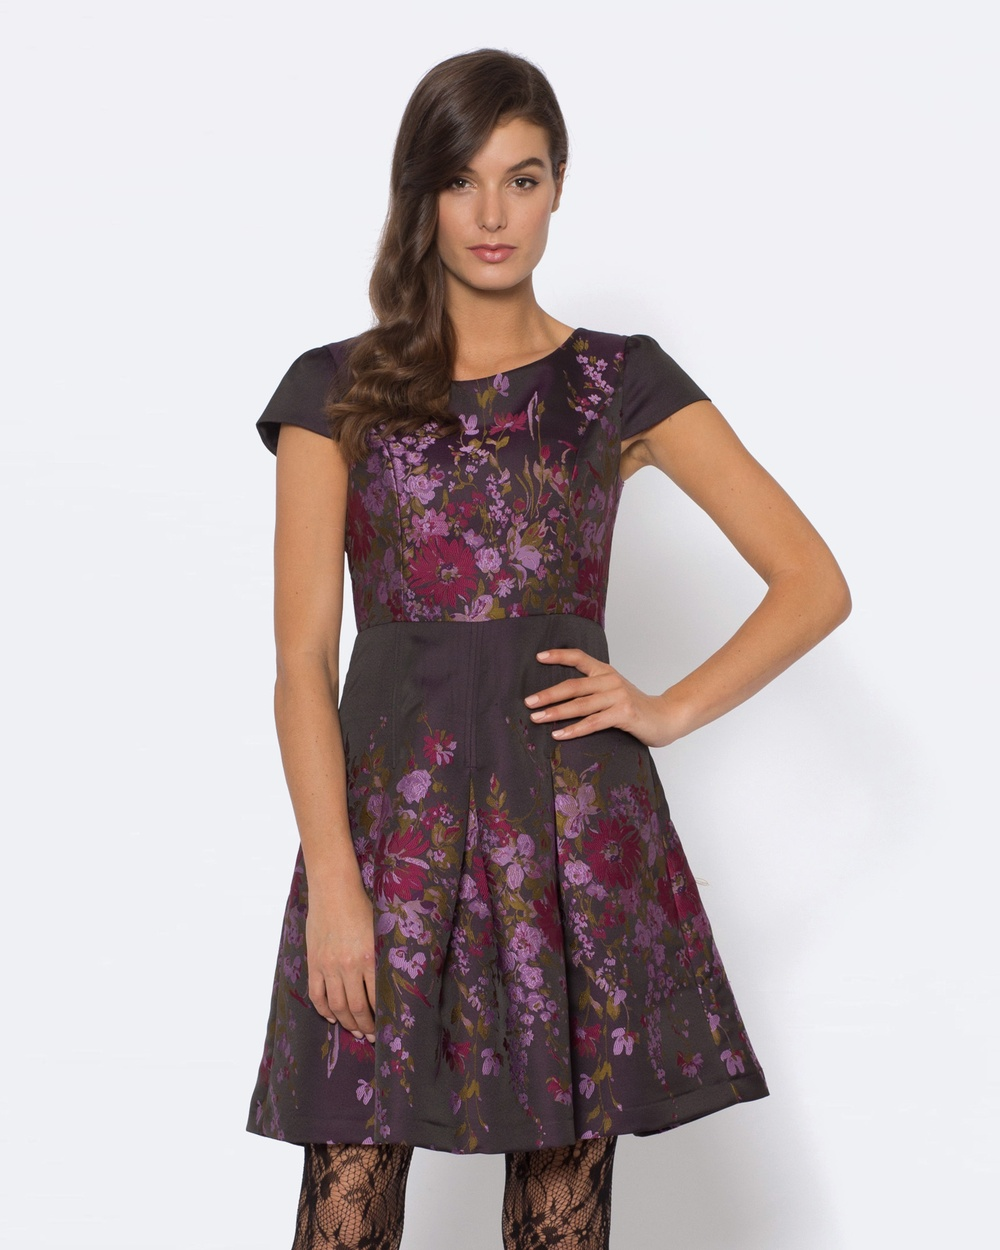 Alannah Hill It Just Blooms Dress Dresses multi It Just Blooms Dress